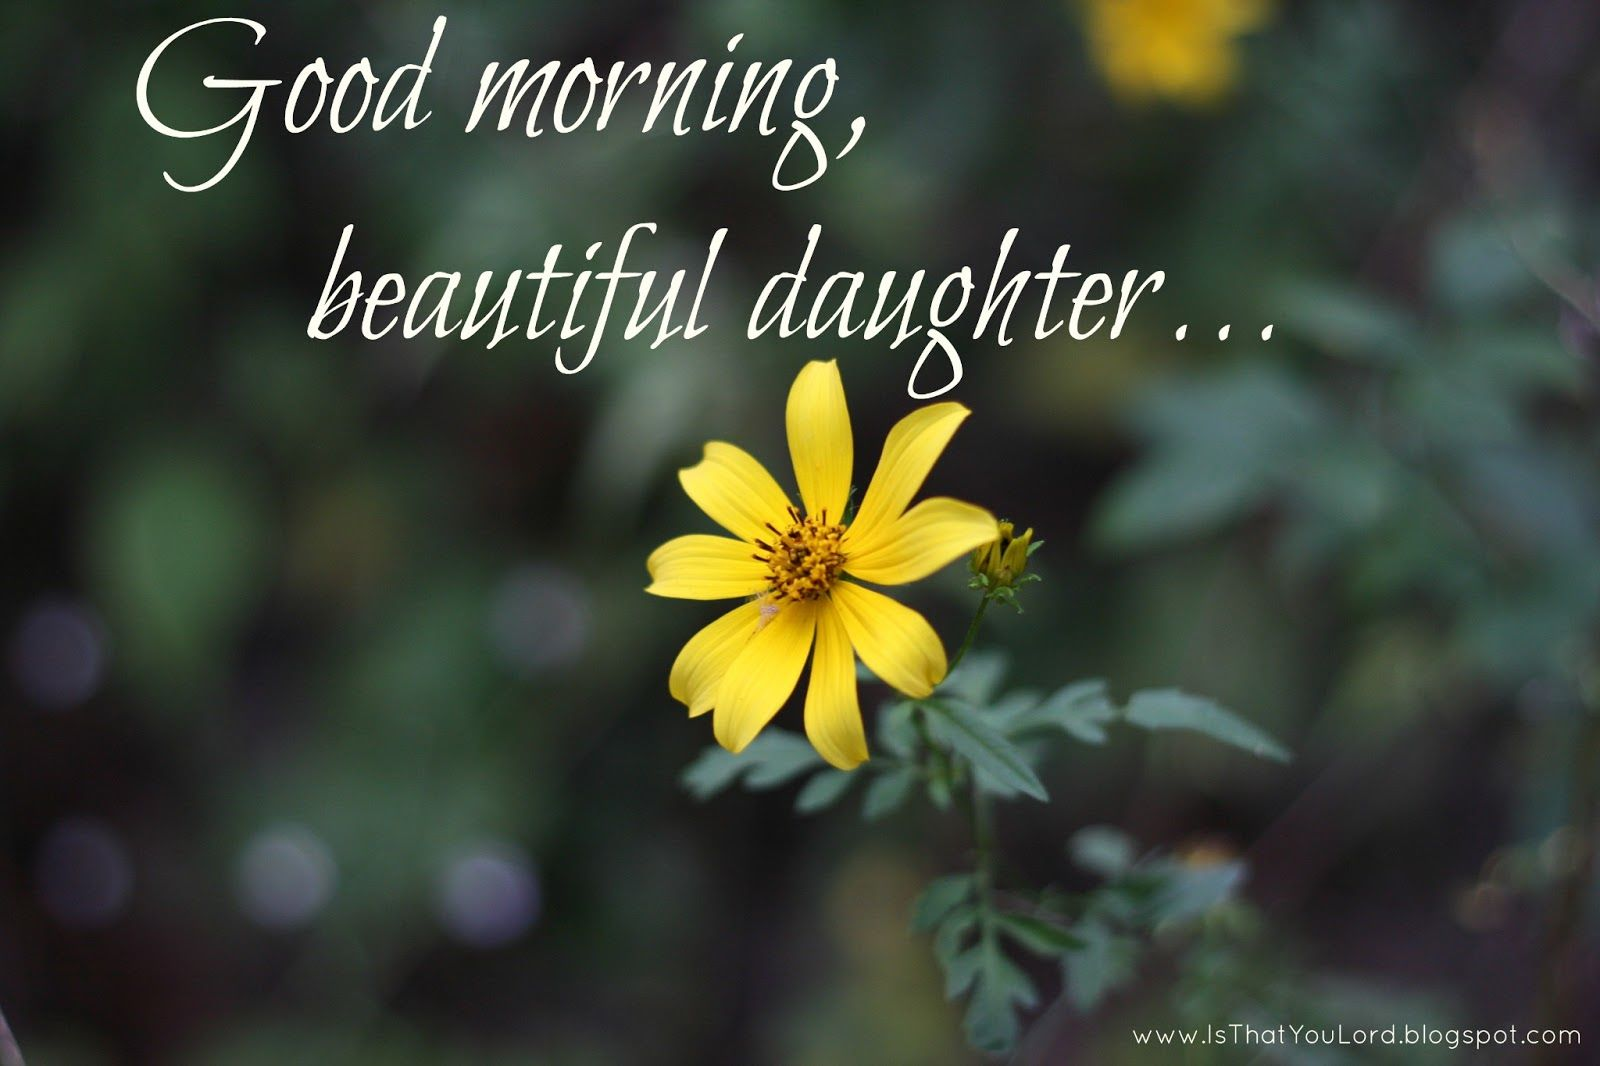 Good morning beautiful daughter pictures photos and images for good morning beautiful daughter izmirmasajfo